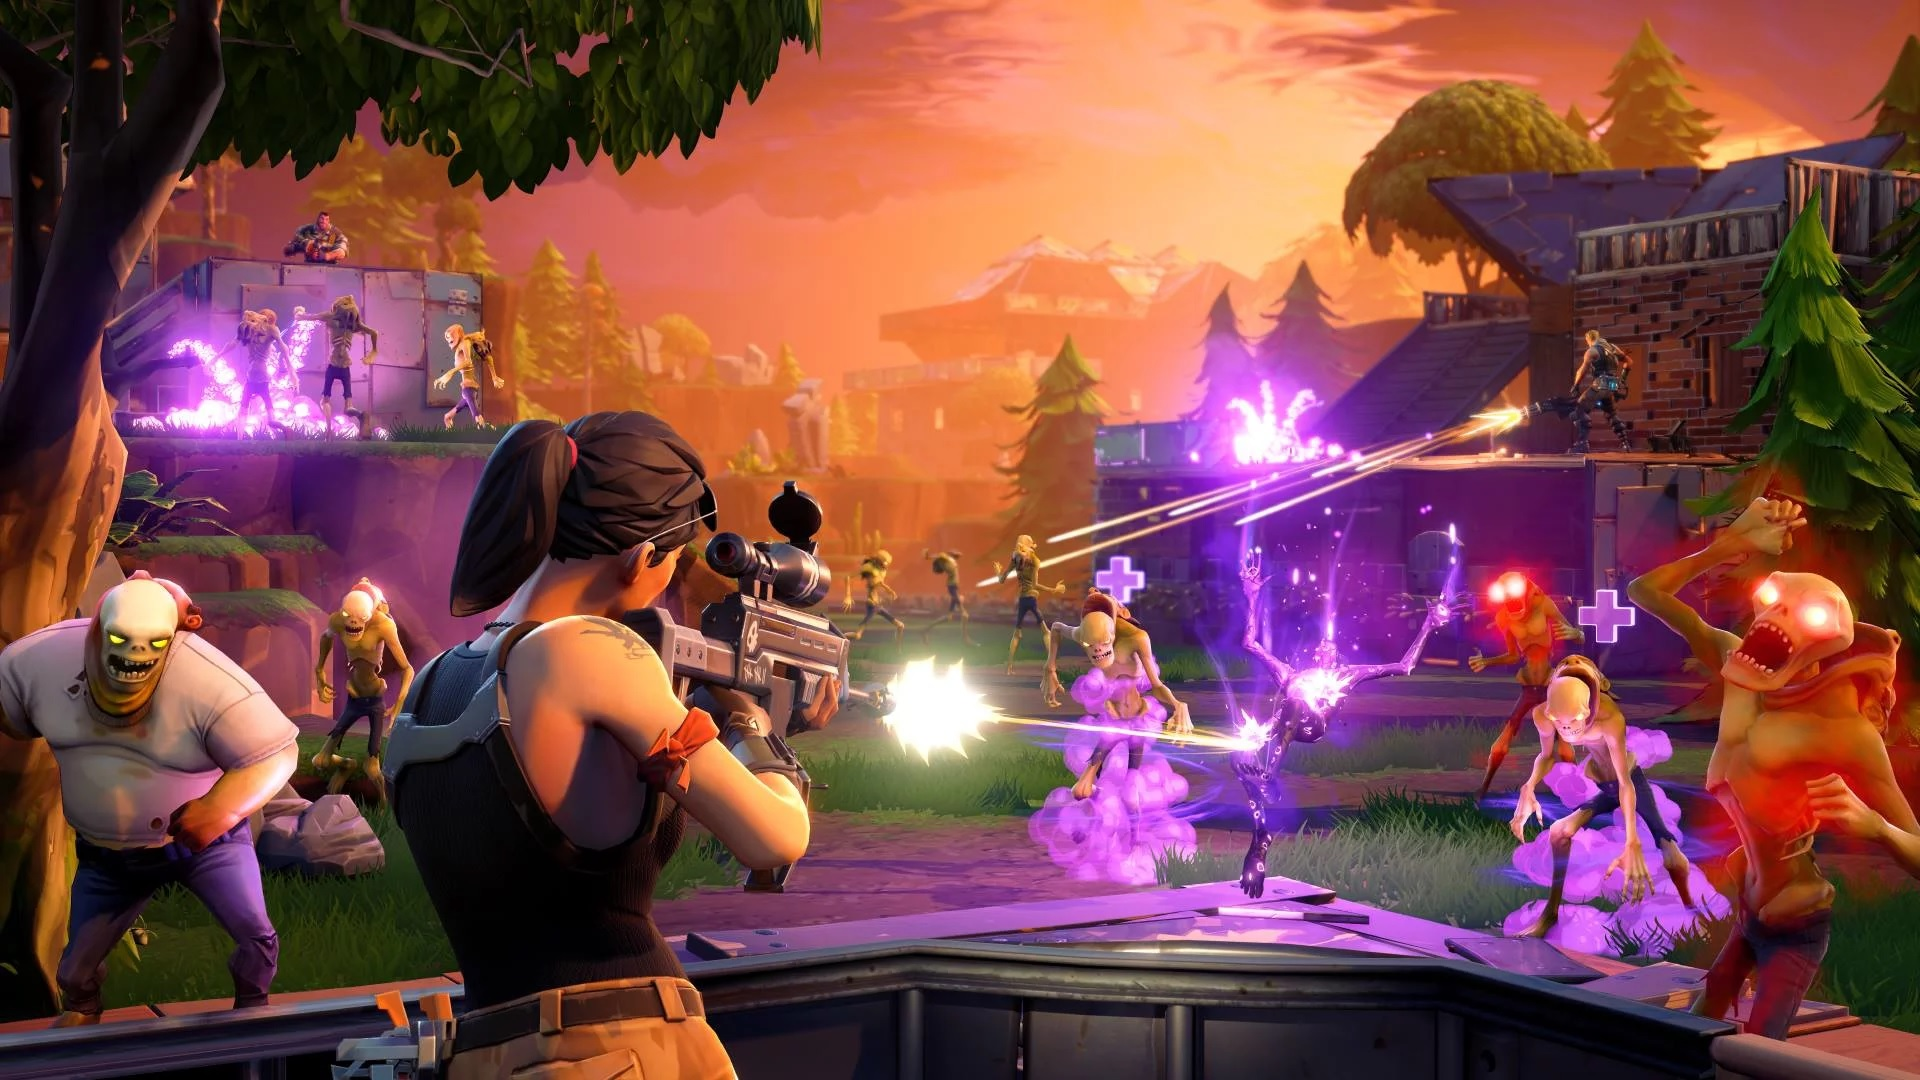 Free Download Fortnite Devs Discuss Integrating Save The World And